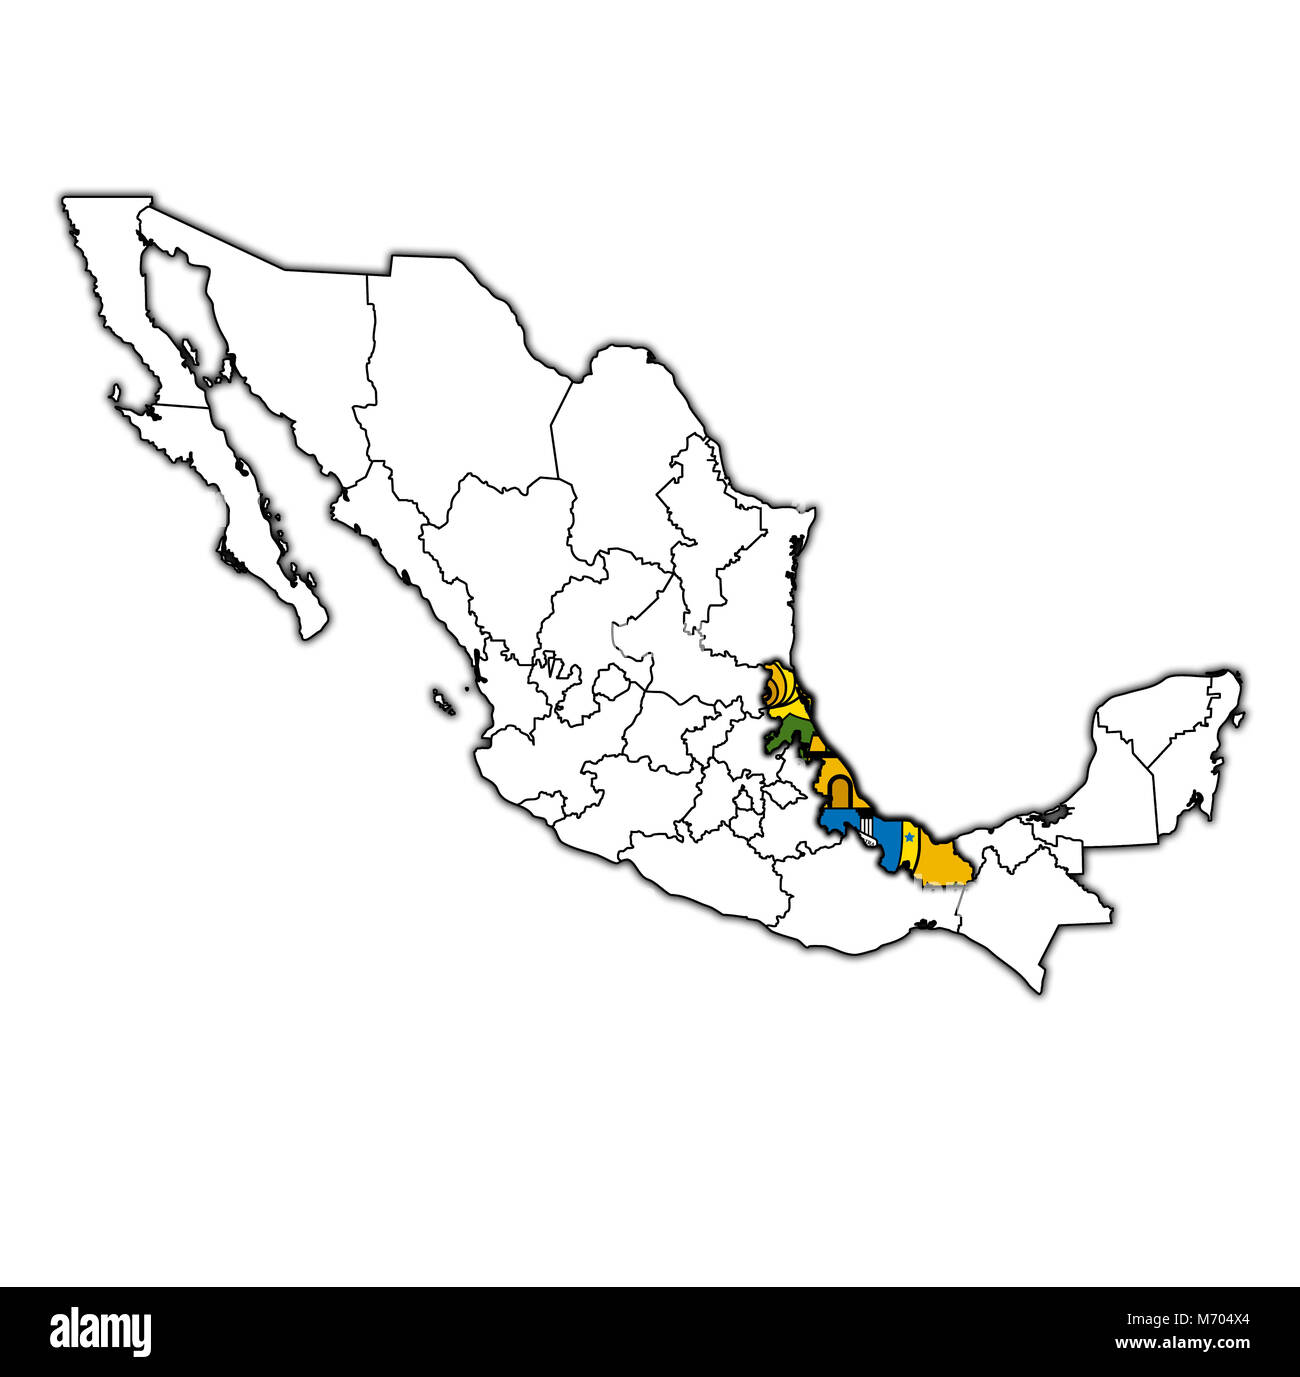 Emblem Of Veracruz State On Map With Administrative Divisions And